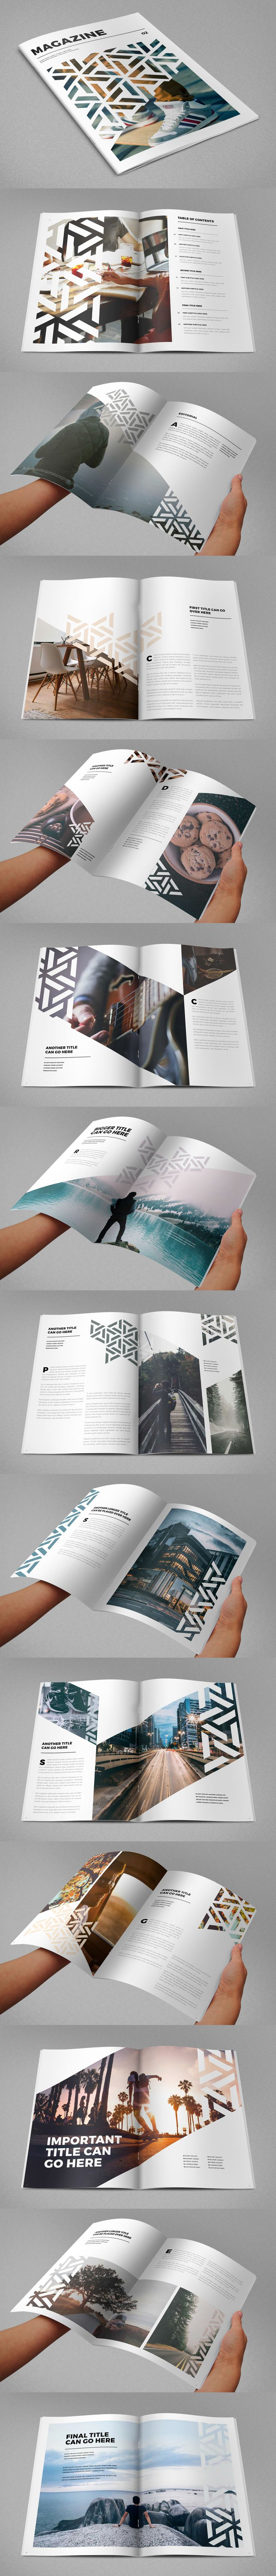 Modern Cool Pattern Magazine Template InDesign INDD - 28 Custom Pages